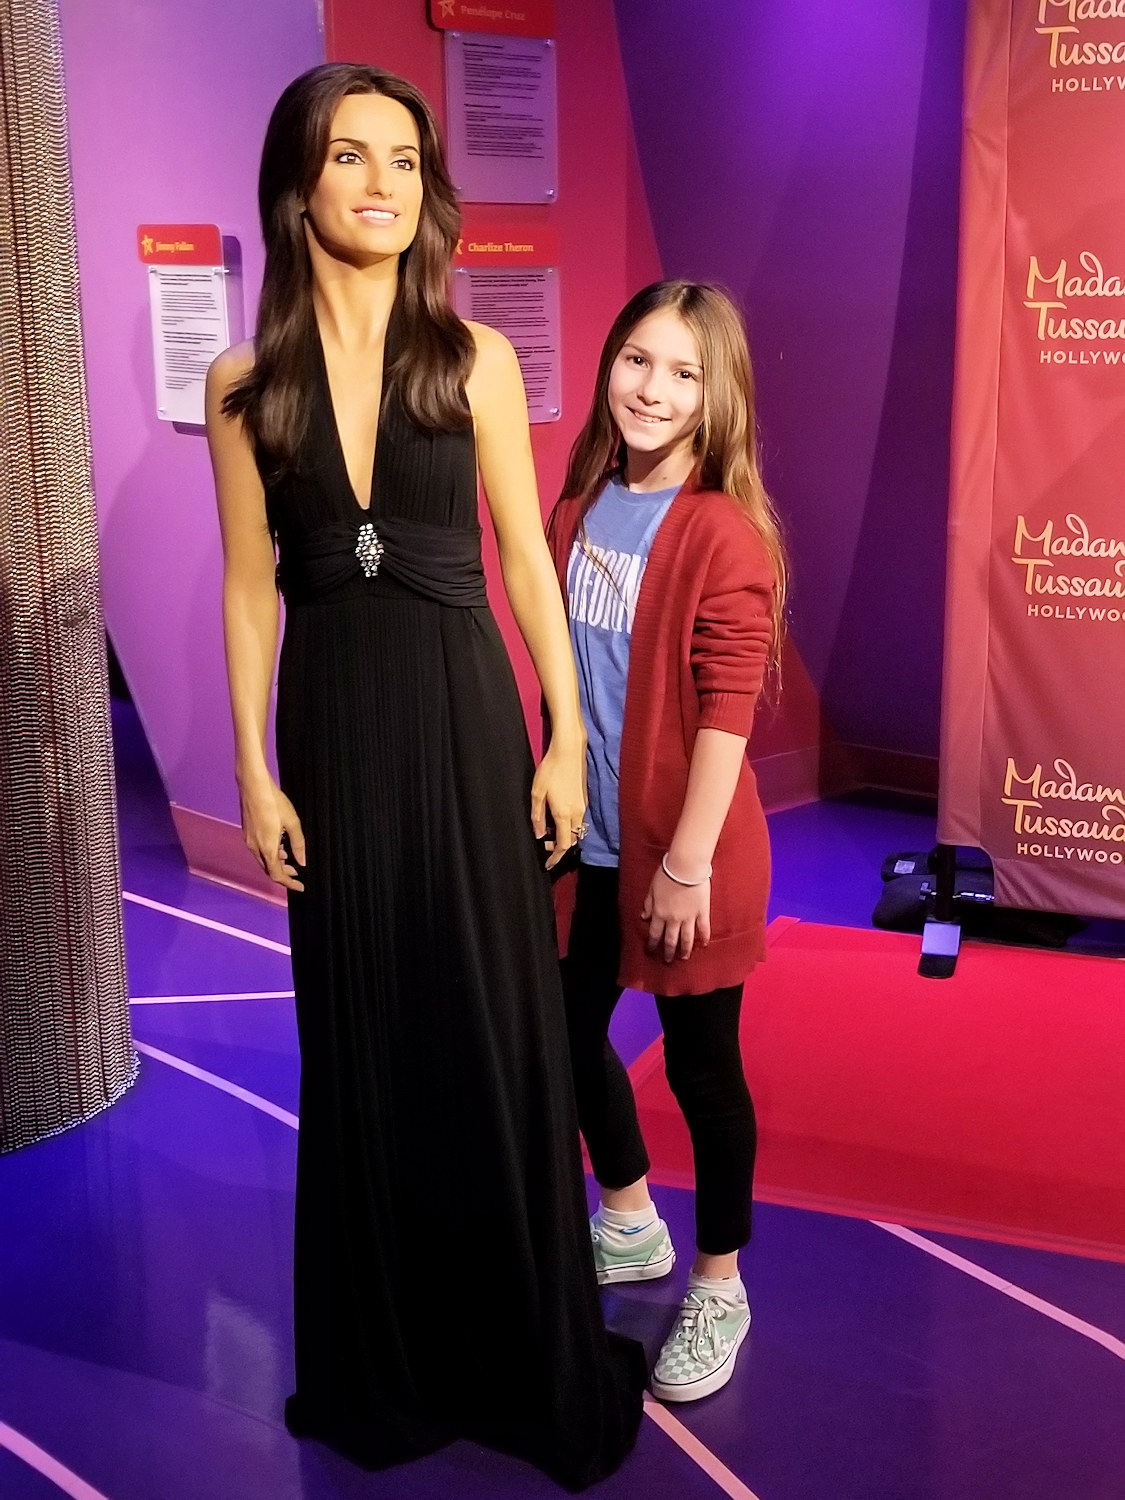 California, Los Angeles County, Hollywood, Madame Tussauds